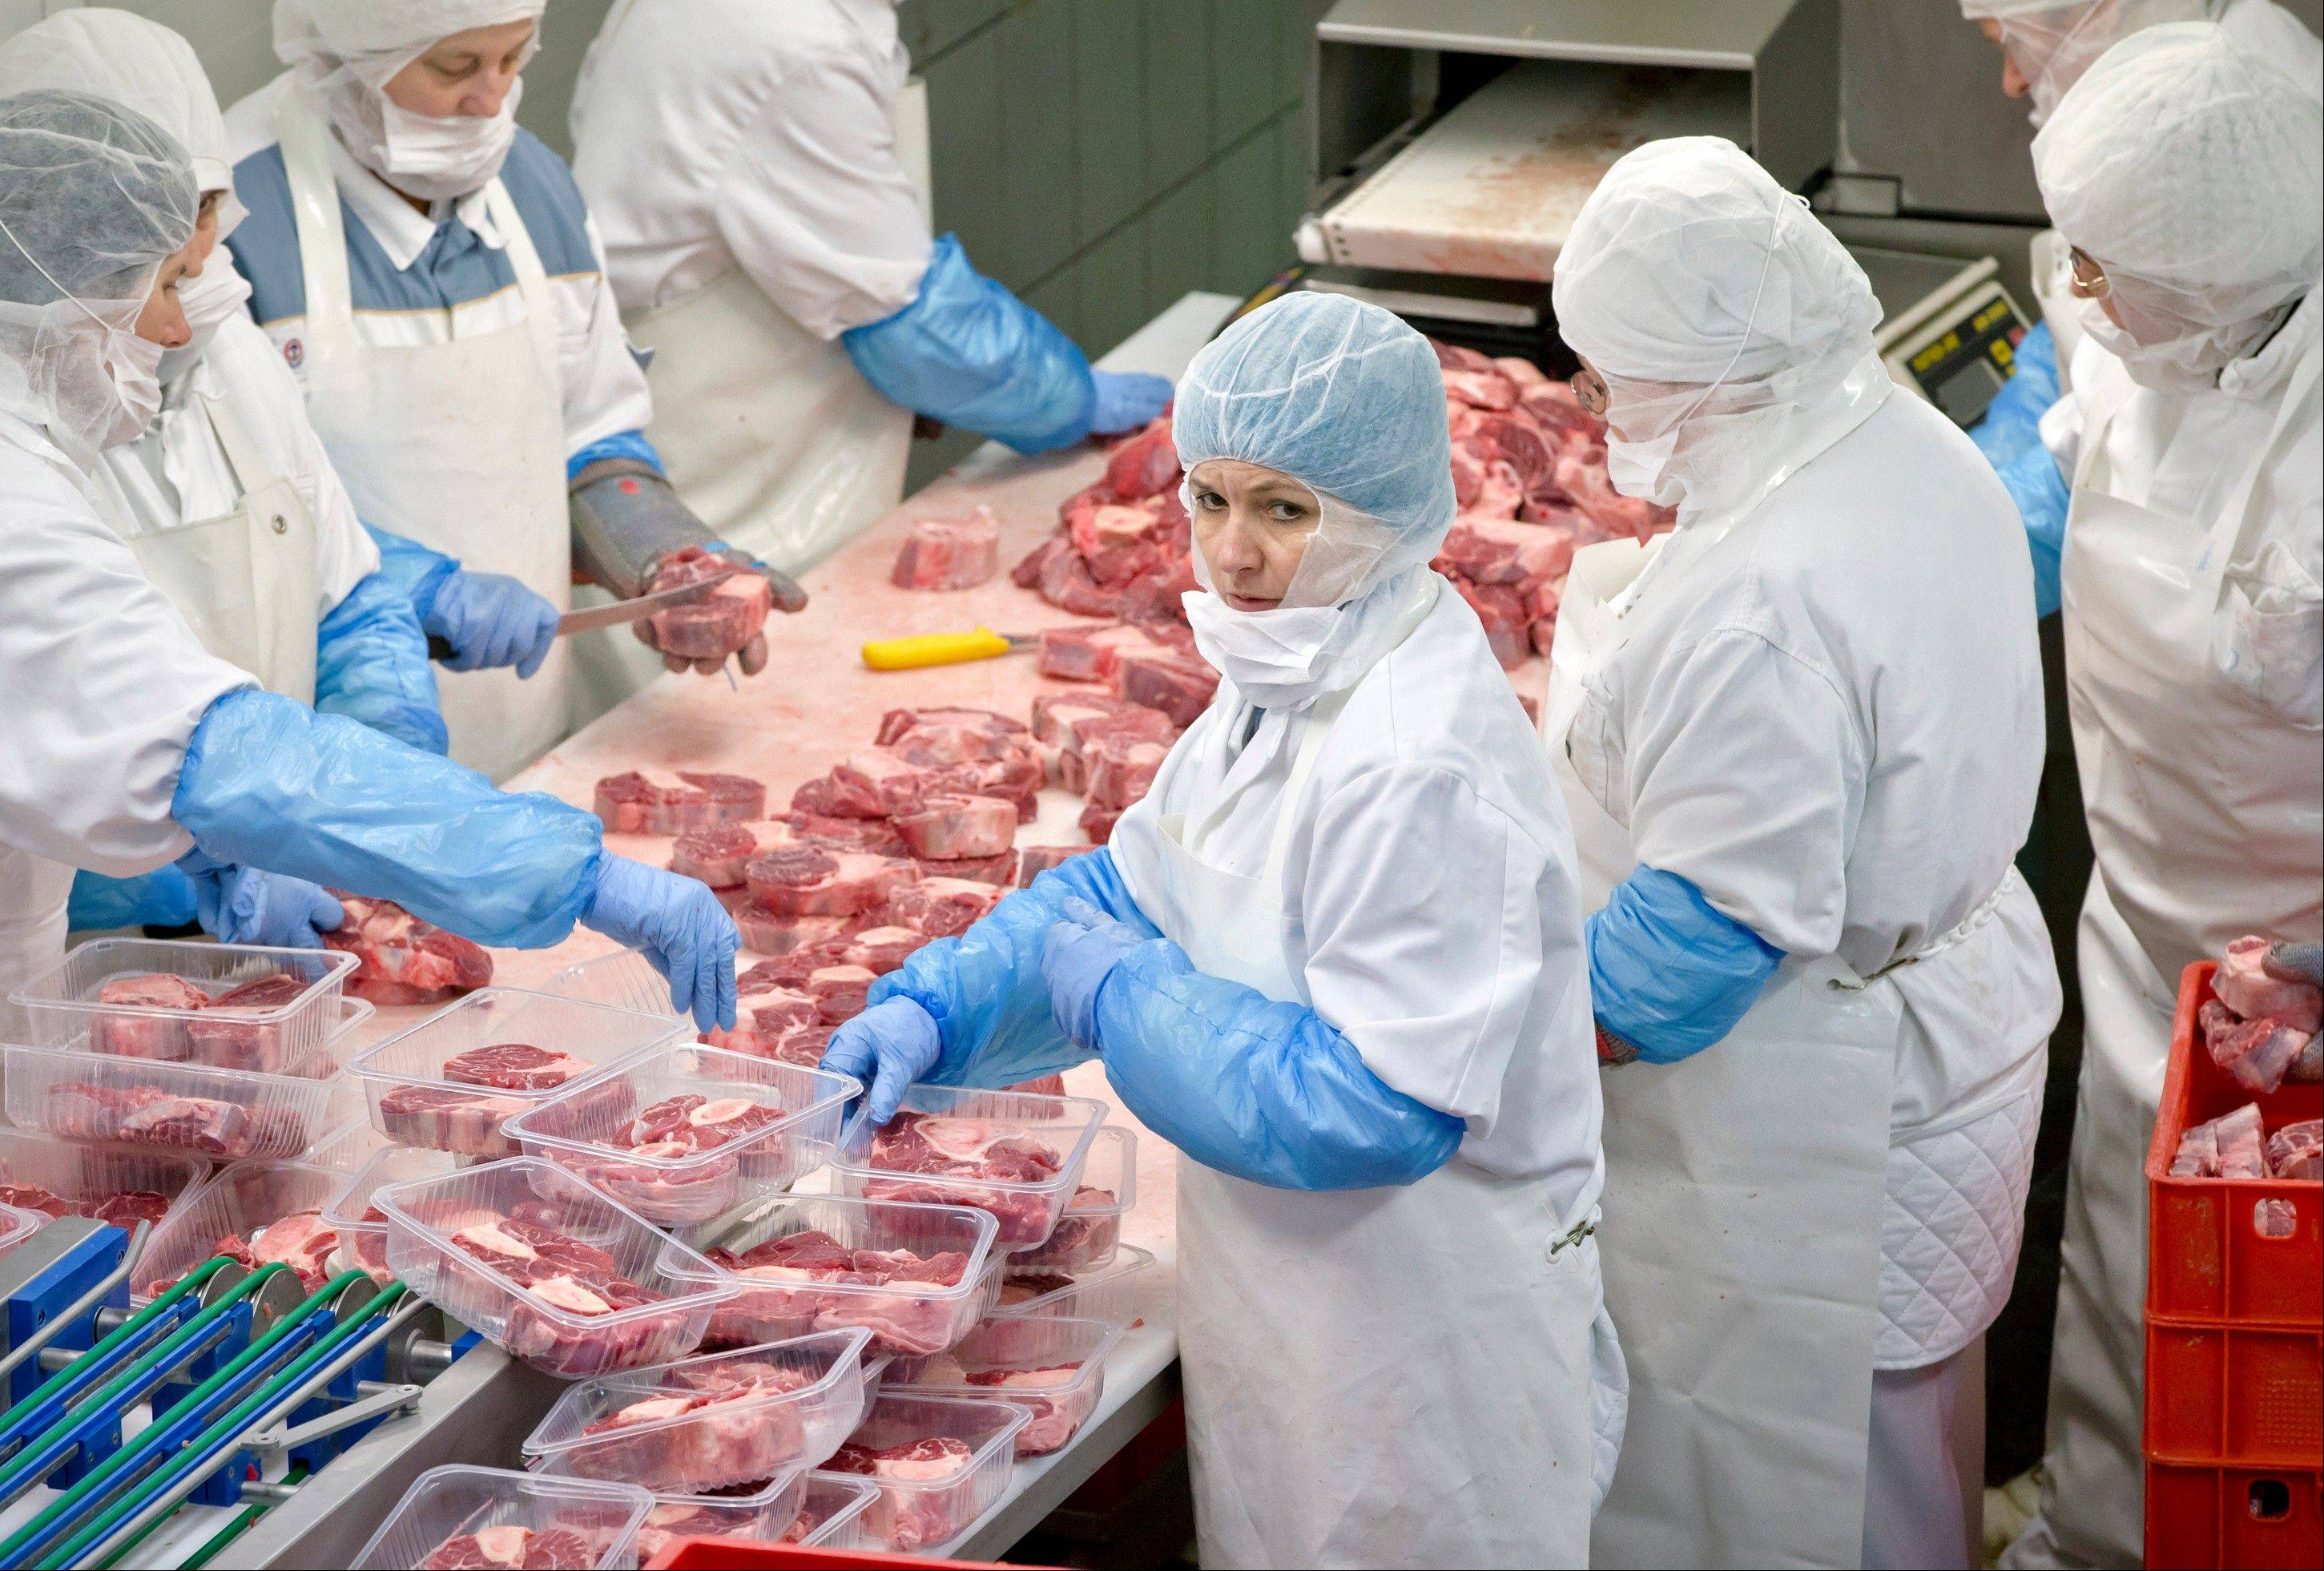 Workers handle meat at the Doly-Com abattoir, one of the two units checked by Romanian authorities in the horse meat scandal, in the village of Roma, northern Romania,